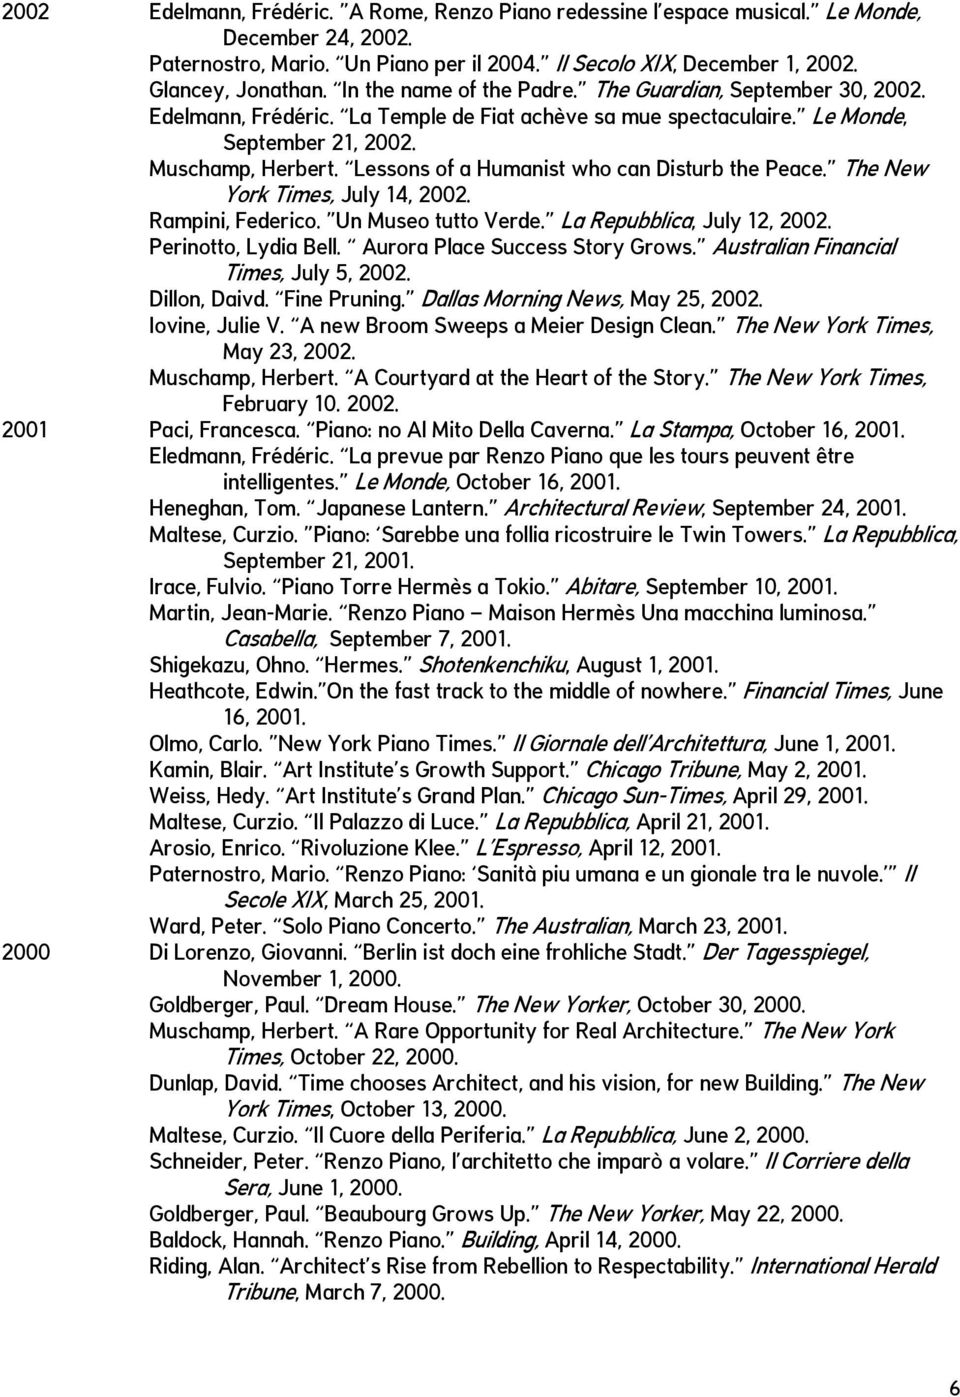 Lessons of a Humanist who can Disturb the Peace. The New York Times, July 14, 2002. Rampini, Federico. Un Museo tutto Verde. La Repubblica, July 12, 2002. Perinotto, Lydia Bell.